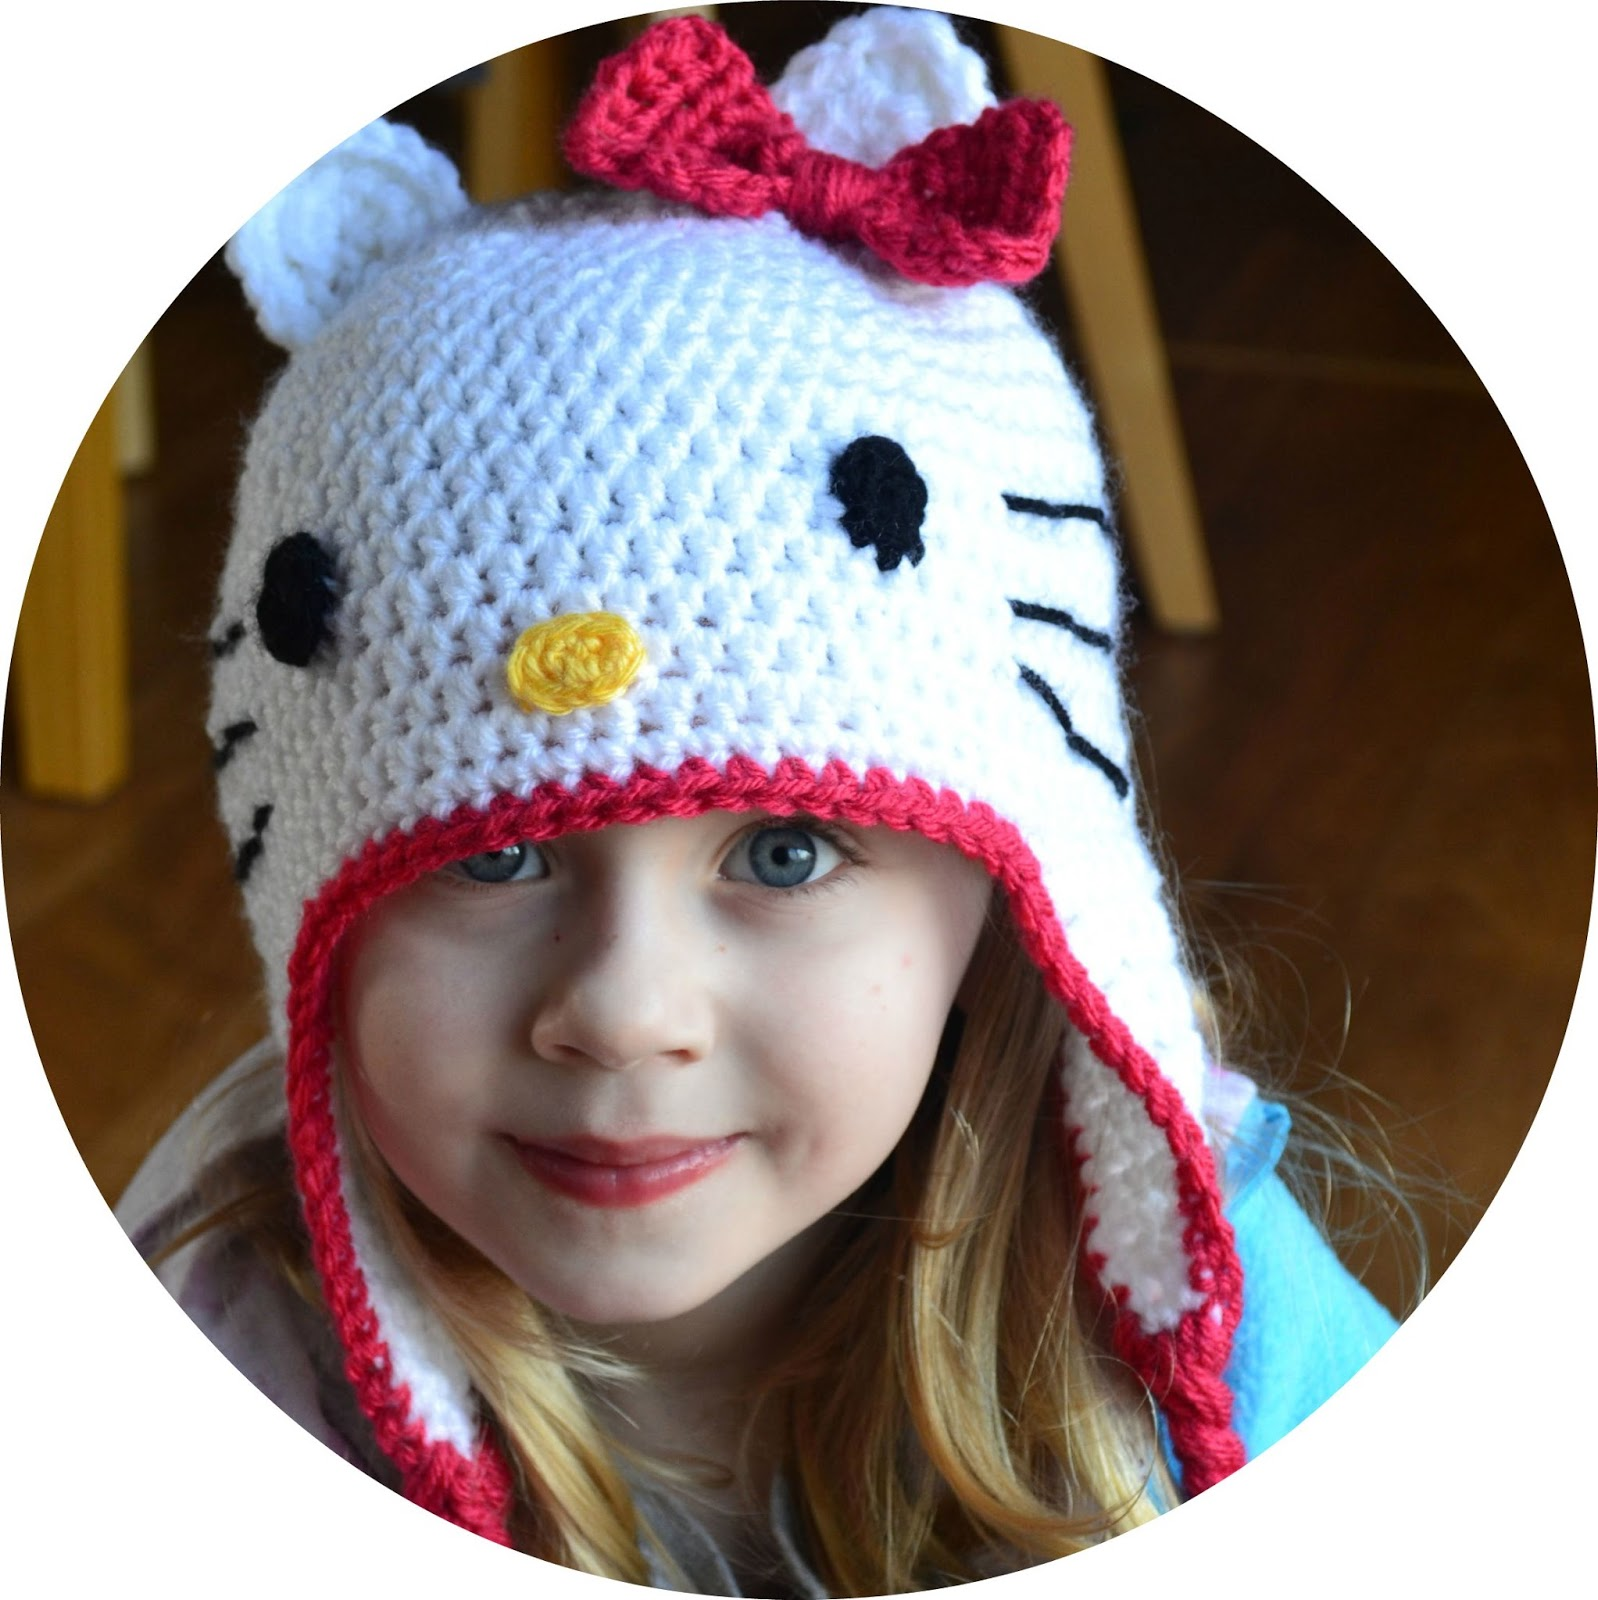 I realized this weekend that I had not posted the Hello Kitty Hat pattern.  So I apologize for not doing so. I completely forgot about it. 741e3934473